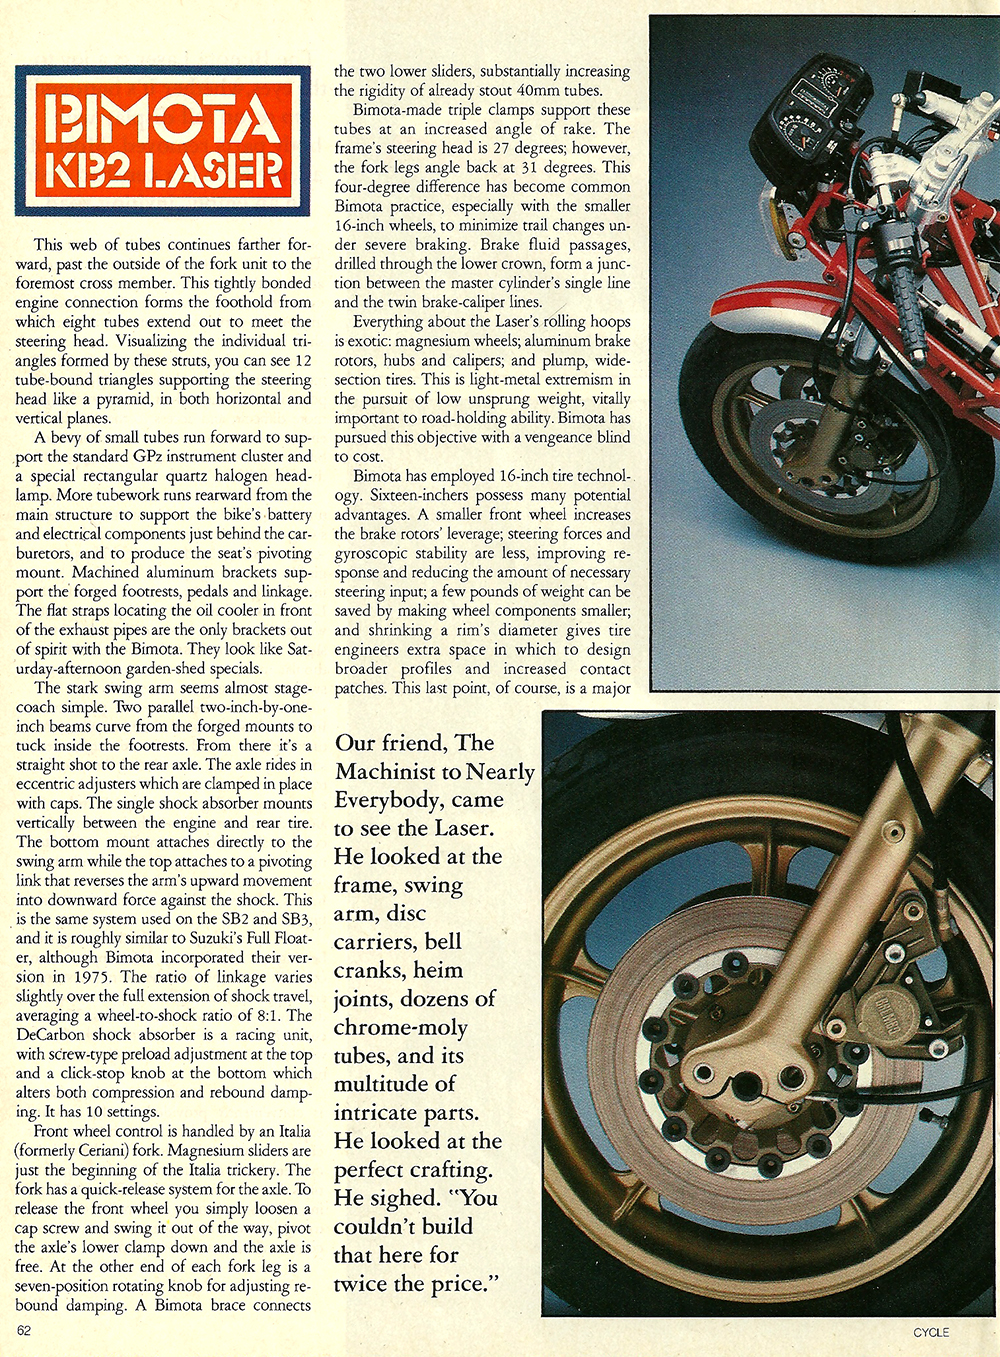 1982 Bimota KB2 Laser road test 5.jpg